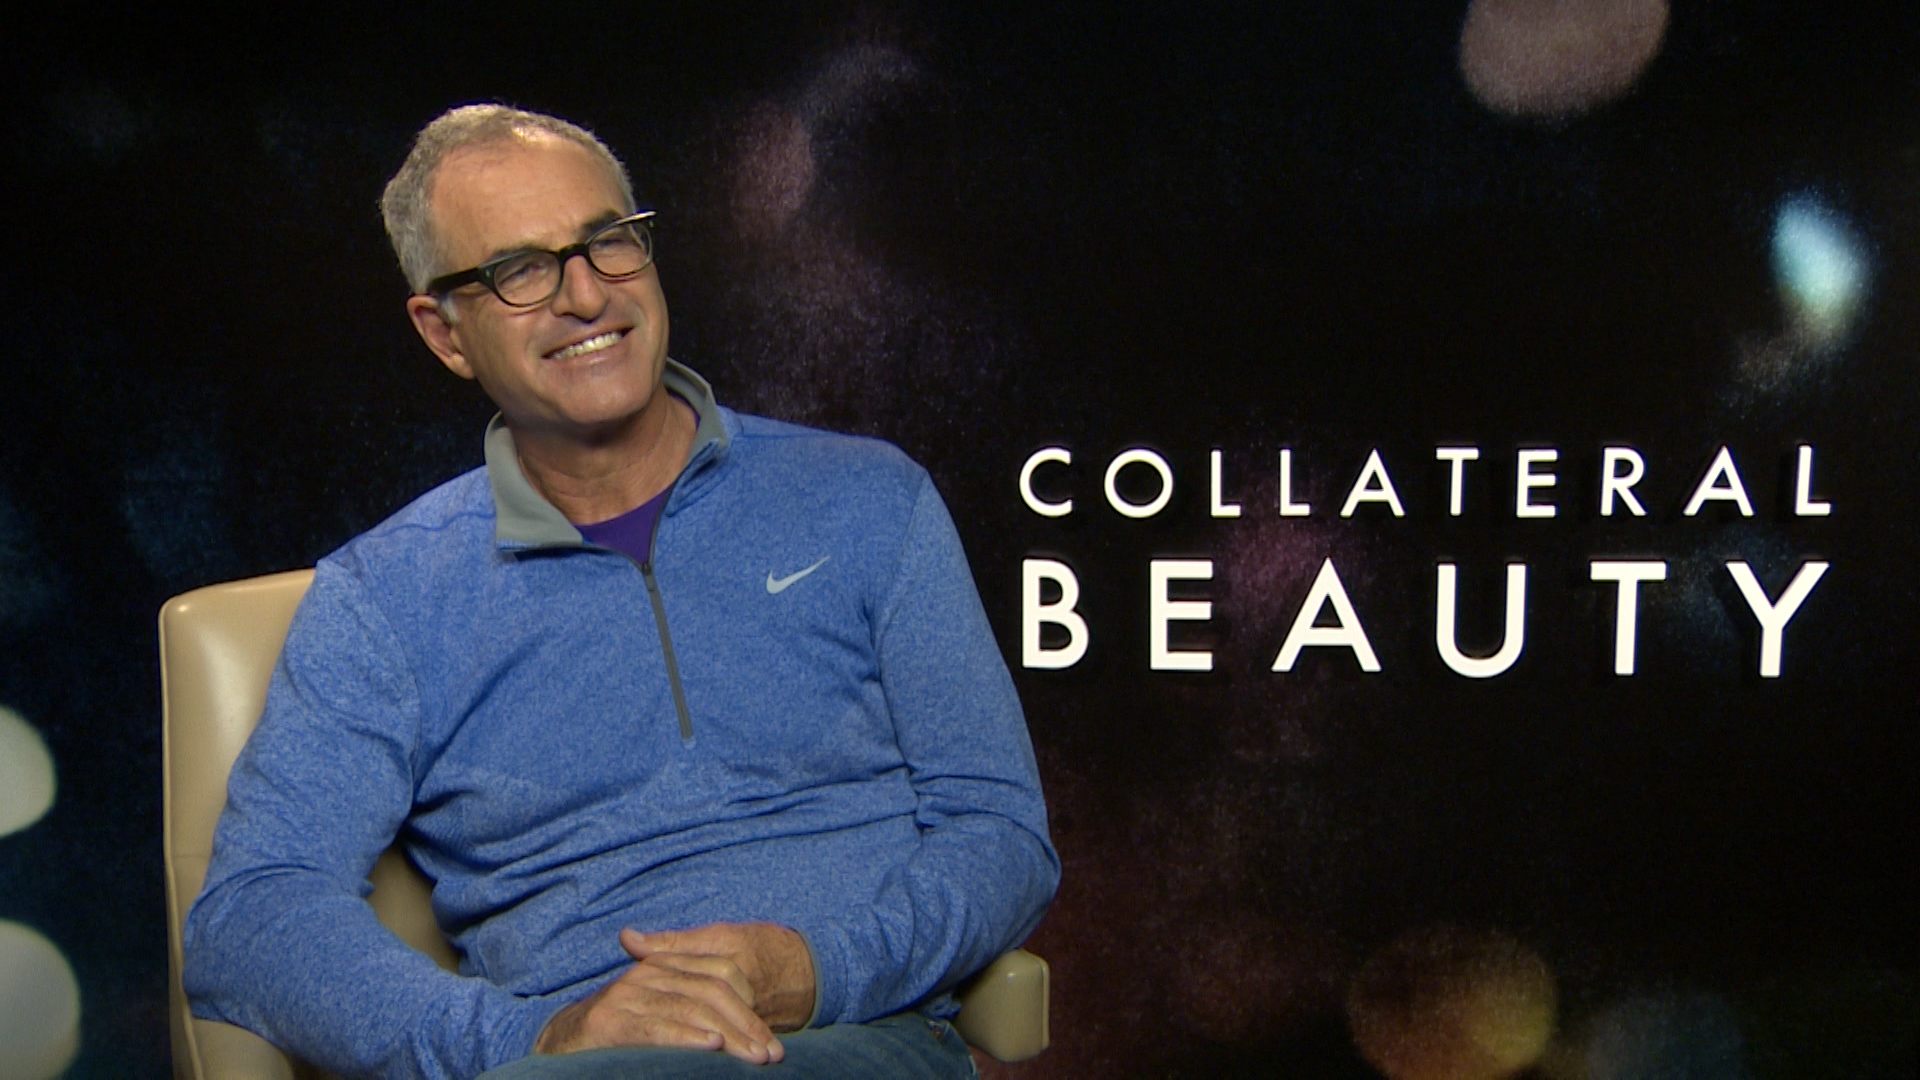 a short review of collateral beauty a film by david frankel Collateral beauty is one of this is a film that fails matthew parkinson ann dowd cinemarter collateral beauty david frankel edward norton helen mirren jacob.